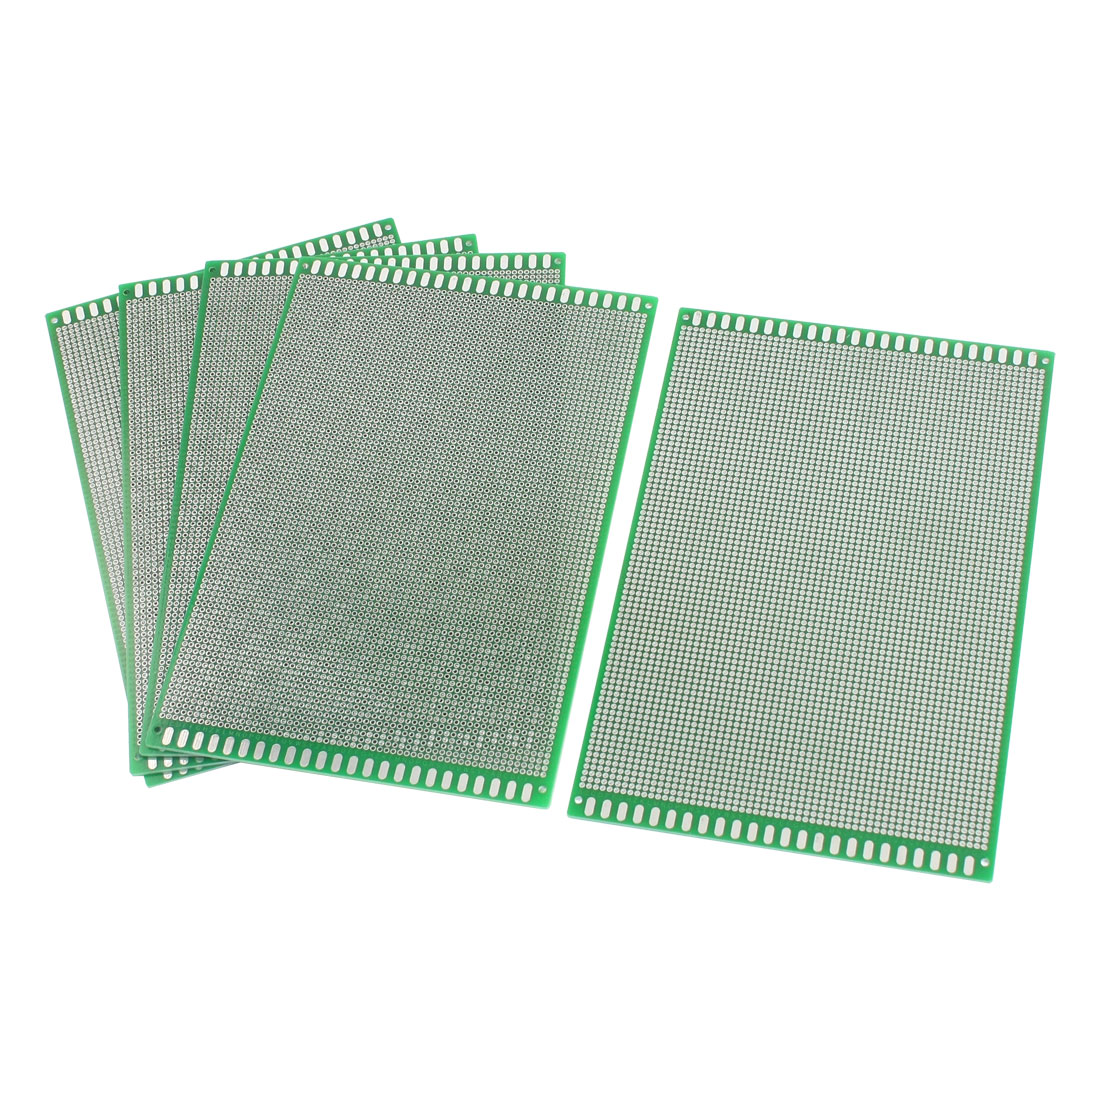 5Pcs DIY Universal Double Sided Protoboard Glass Fiber Prototyping PCB Printed Circuit Board 12cm x 18cm